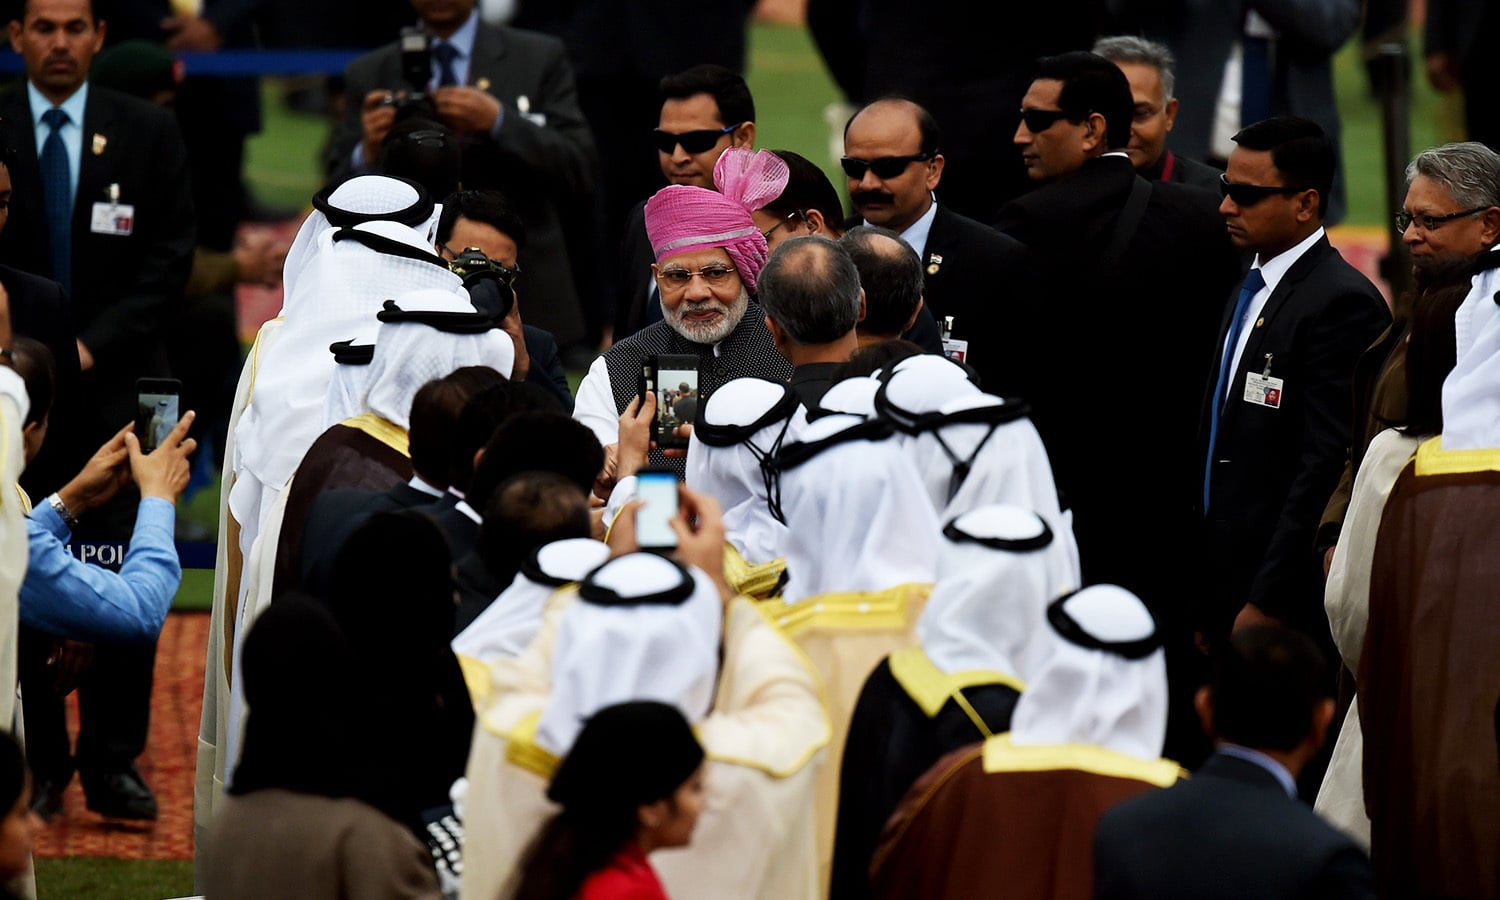 Indian Prime Minister Narendra Modi (C) meet officials from the UAE during the 68th Republic Day celebrations.— AFP